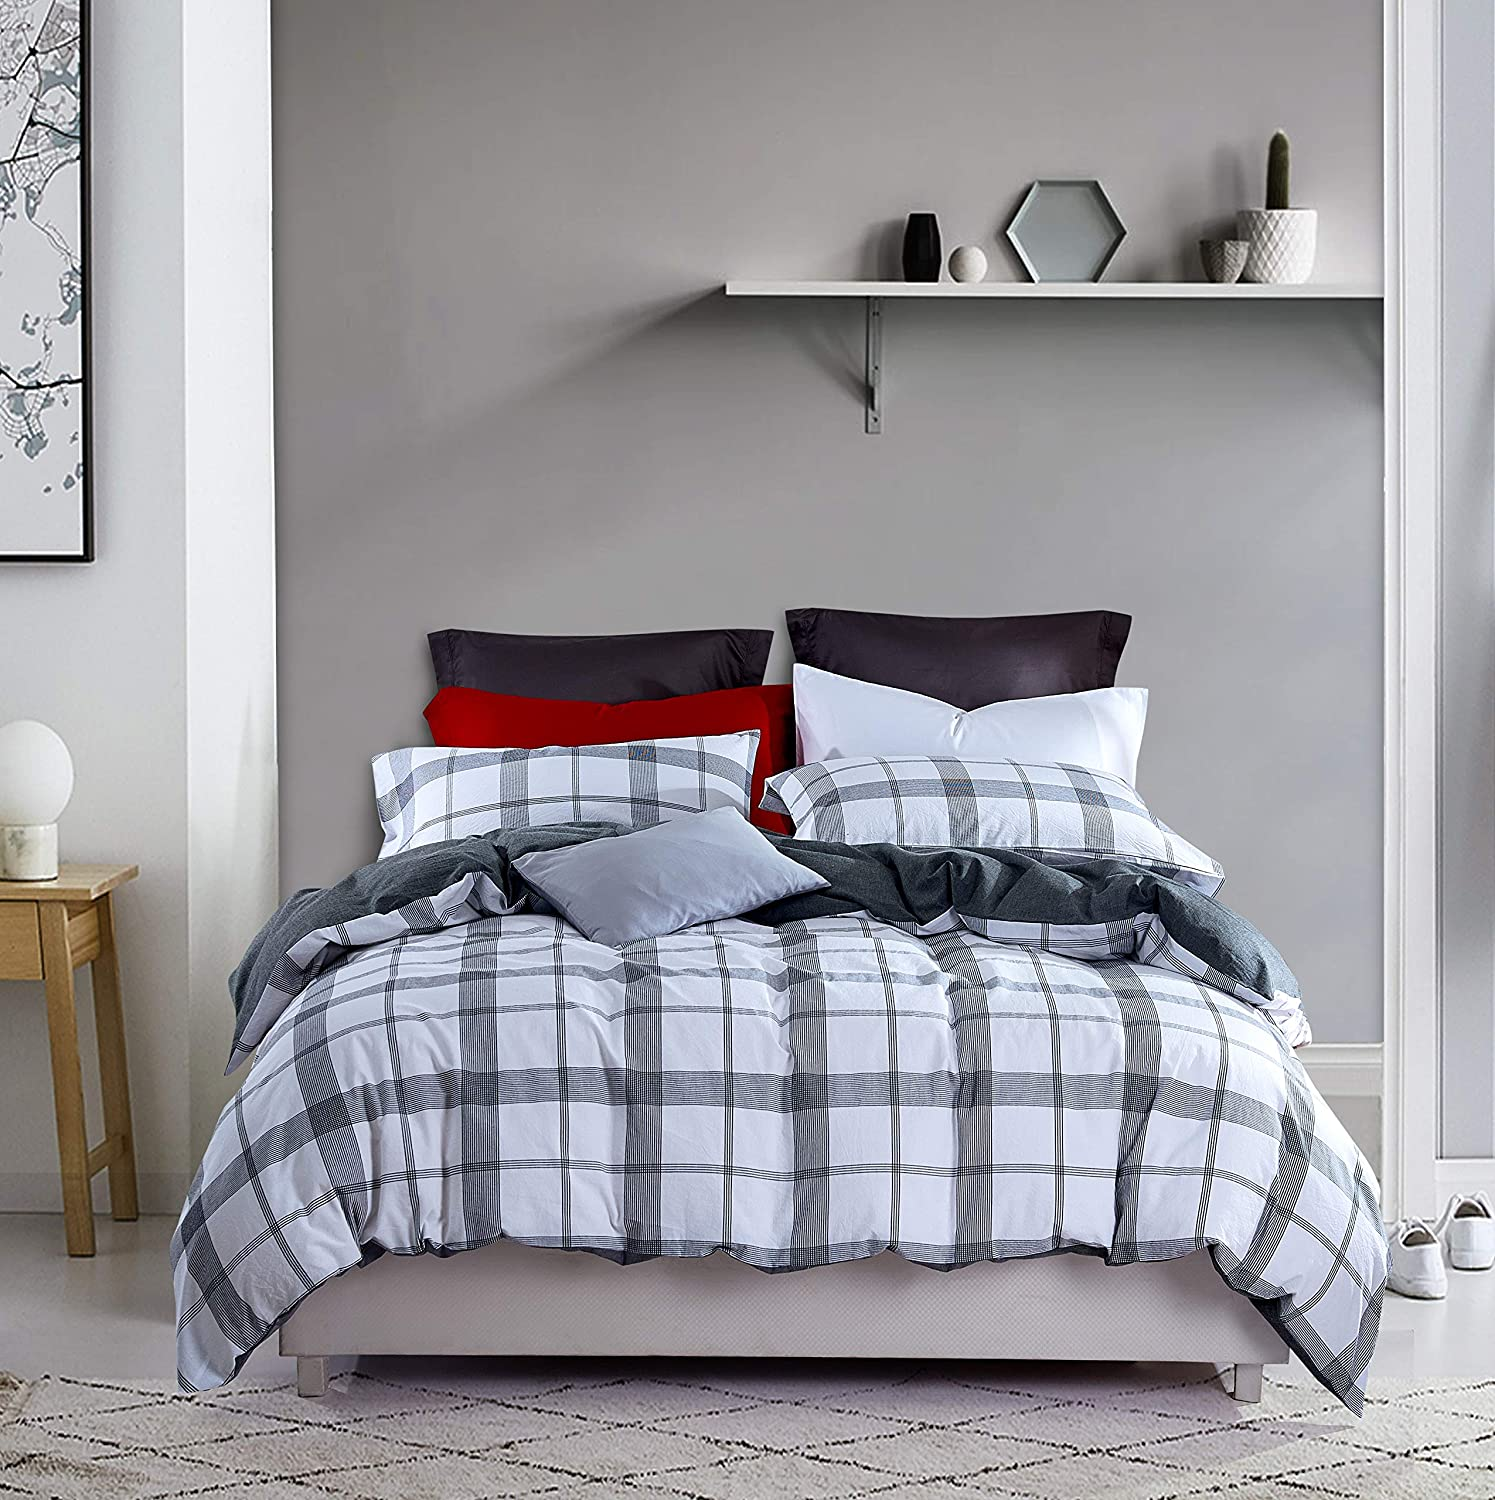 MengBoo Buffalo 3 Pieces Duvet Cover Set Washed Cotton Geo Black Grey and White Checked Zipper Closure and Corner Ties (Black Grey White, King)